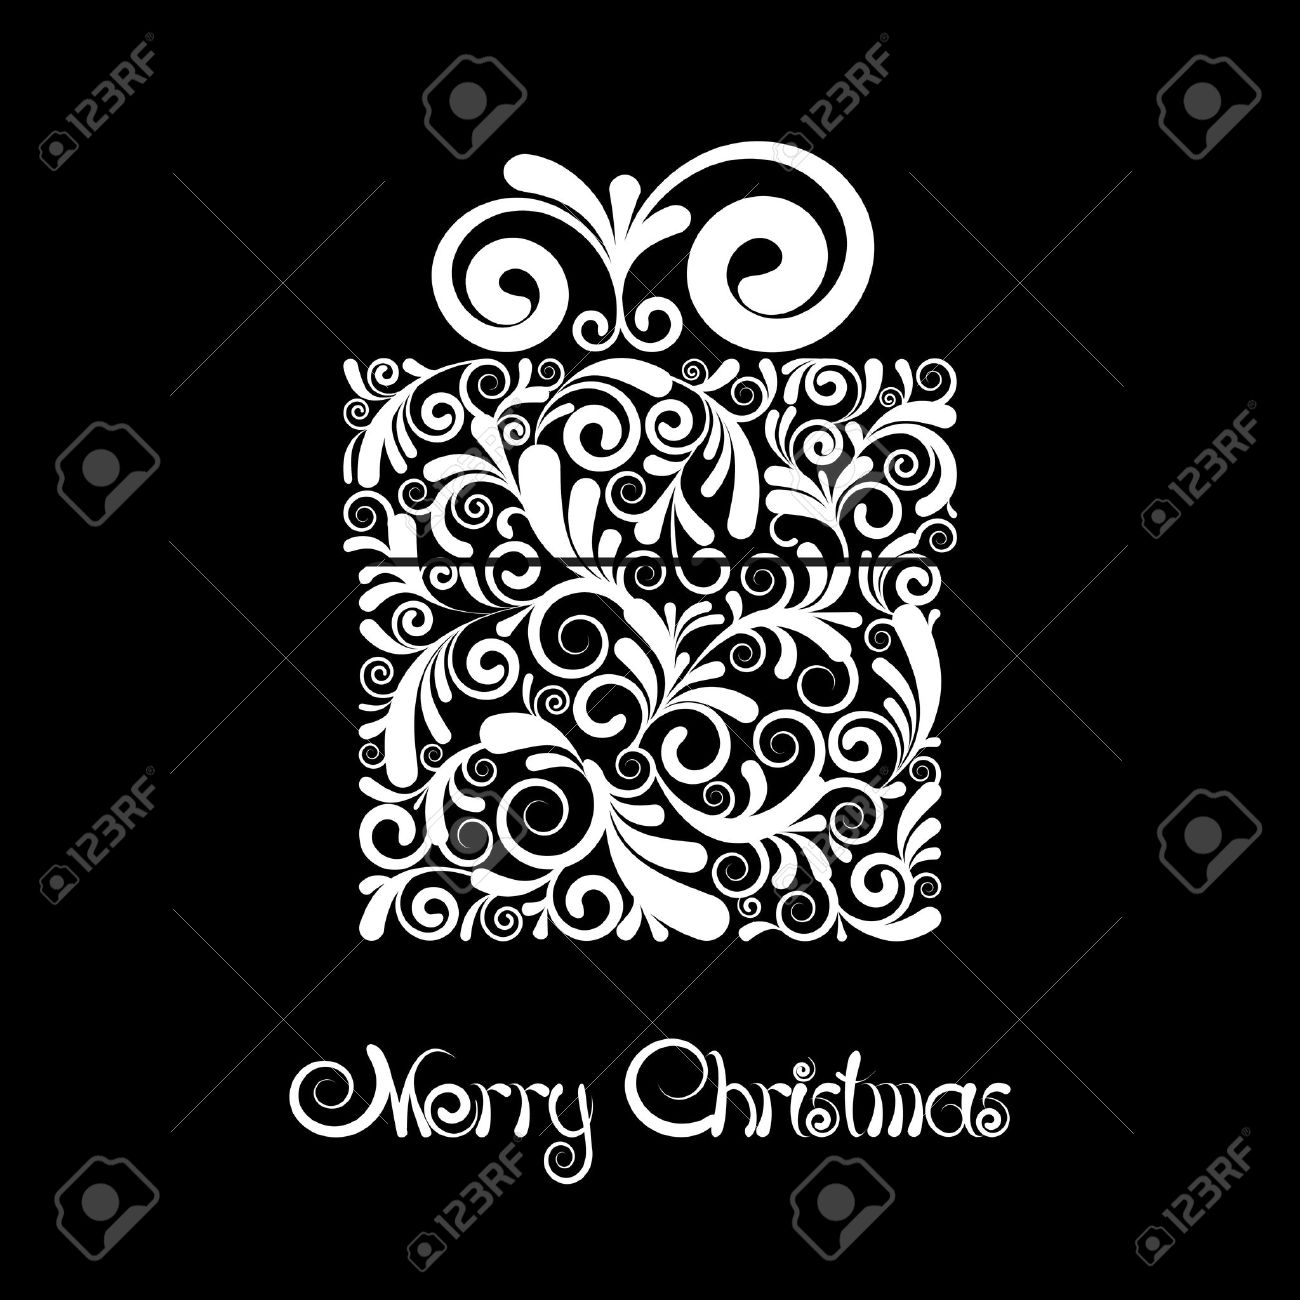 Gift card clipart black and white christmas